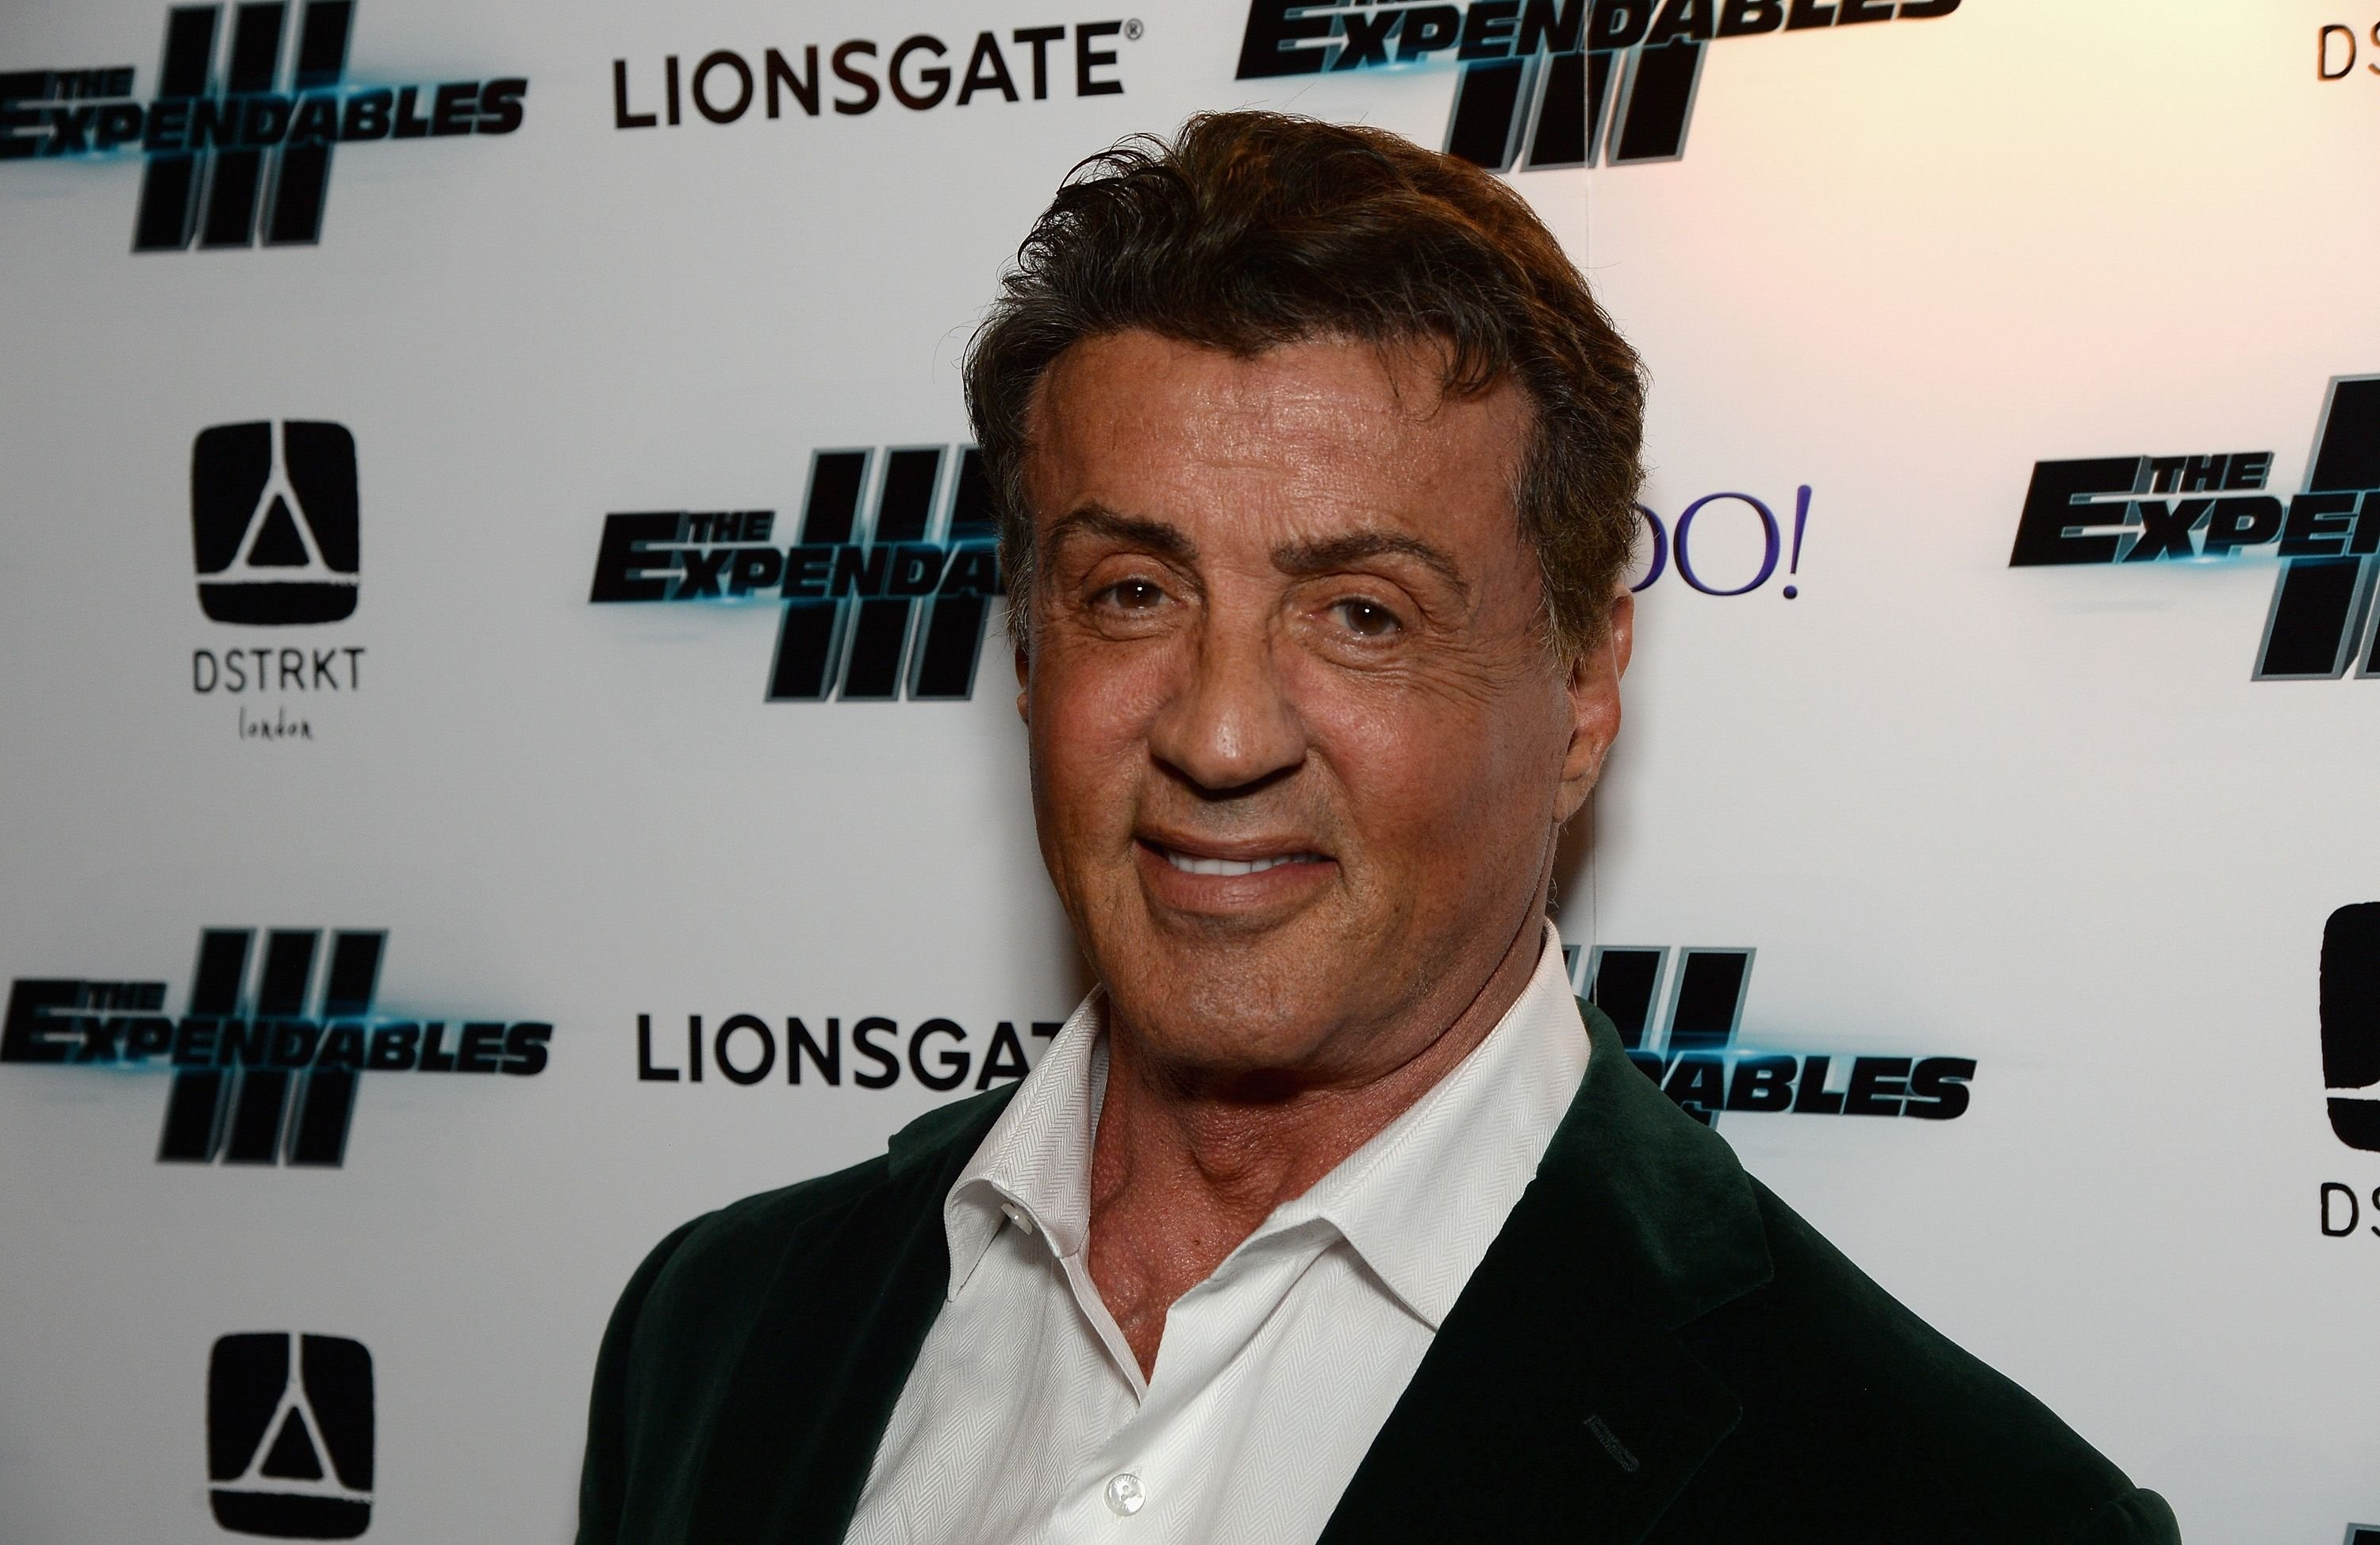 """Sylvester Stallone at """"The Expendables 3"""" after-party at Dstrkt on August 4, 2014, in London, England 